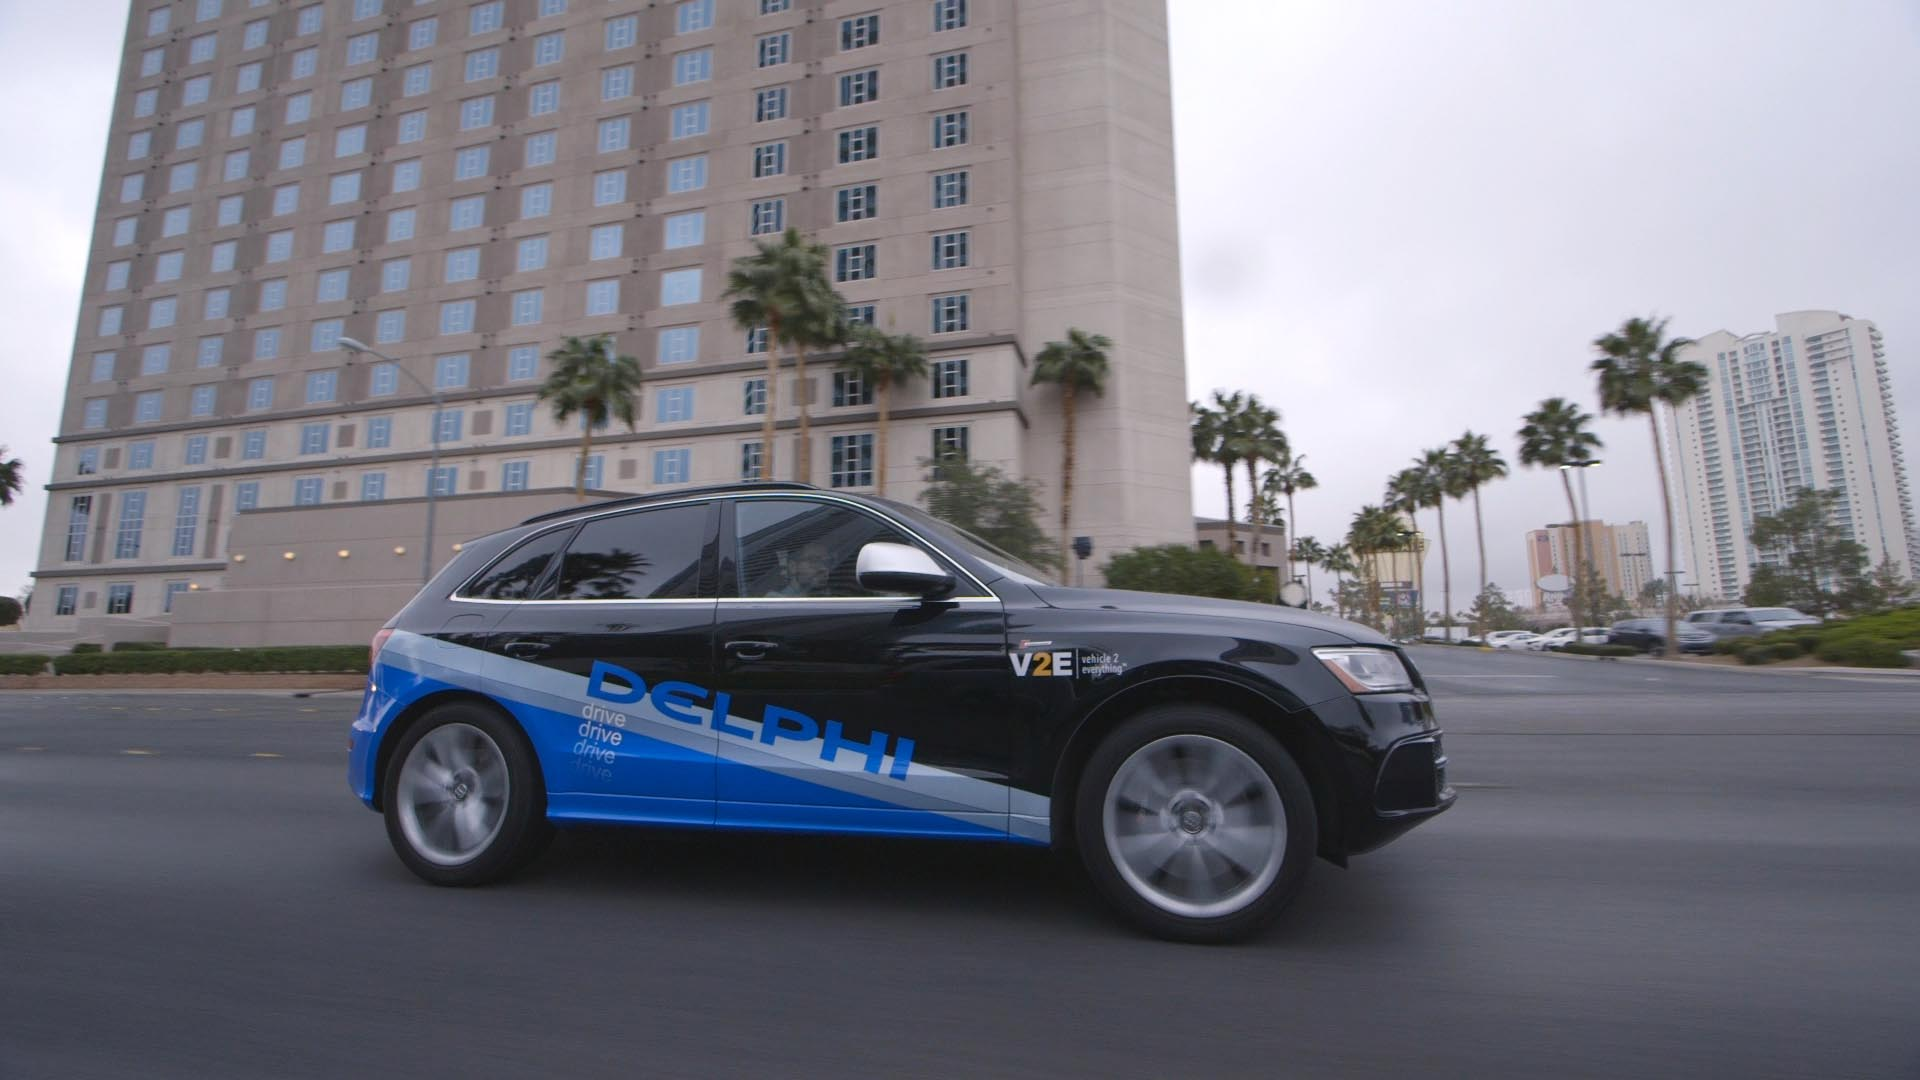 Delphi boosts self-driving efforts with $400 mn deal for nuTonomy